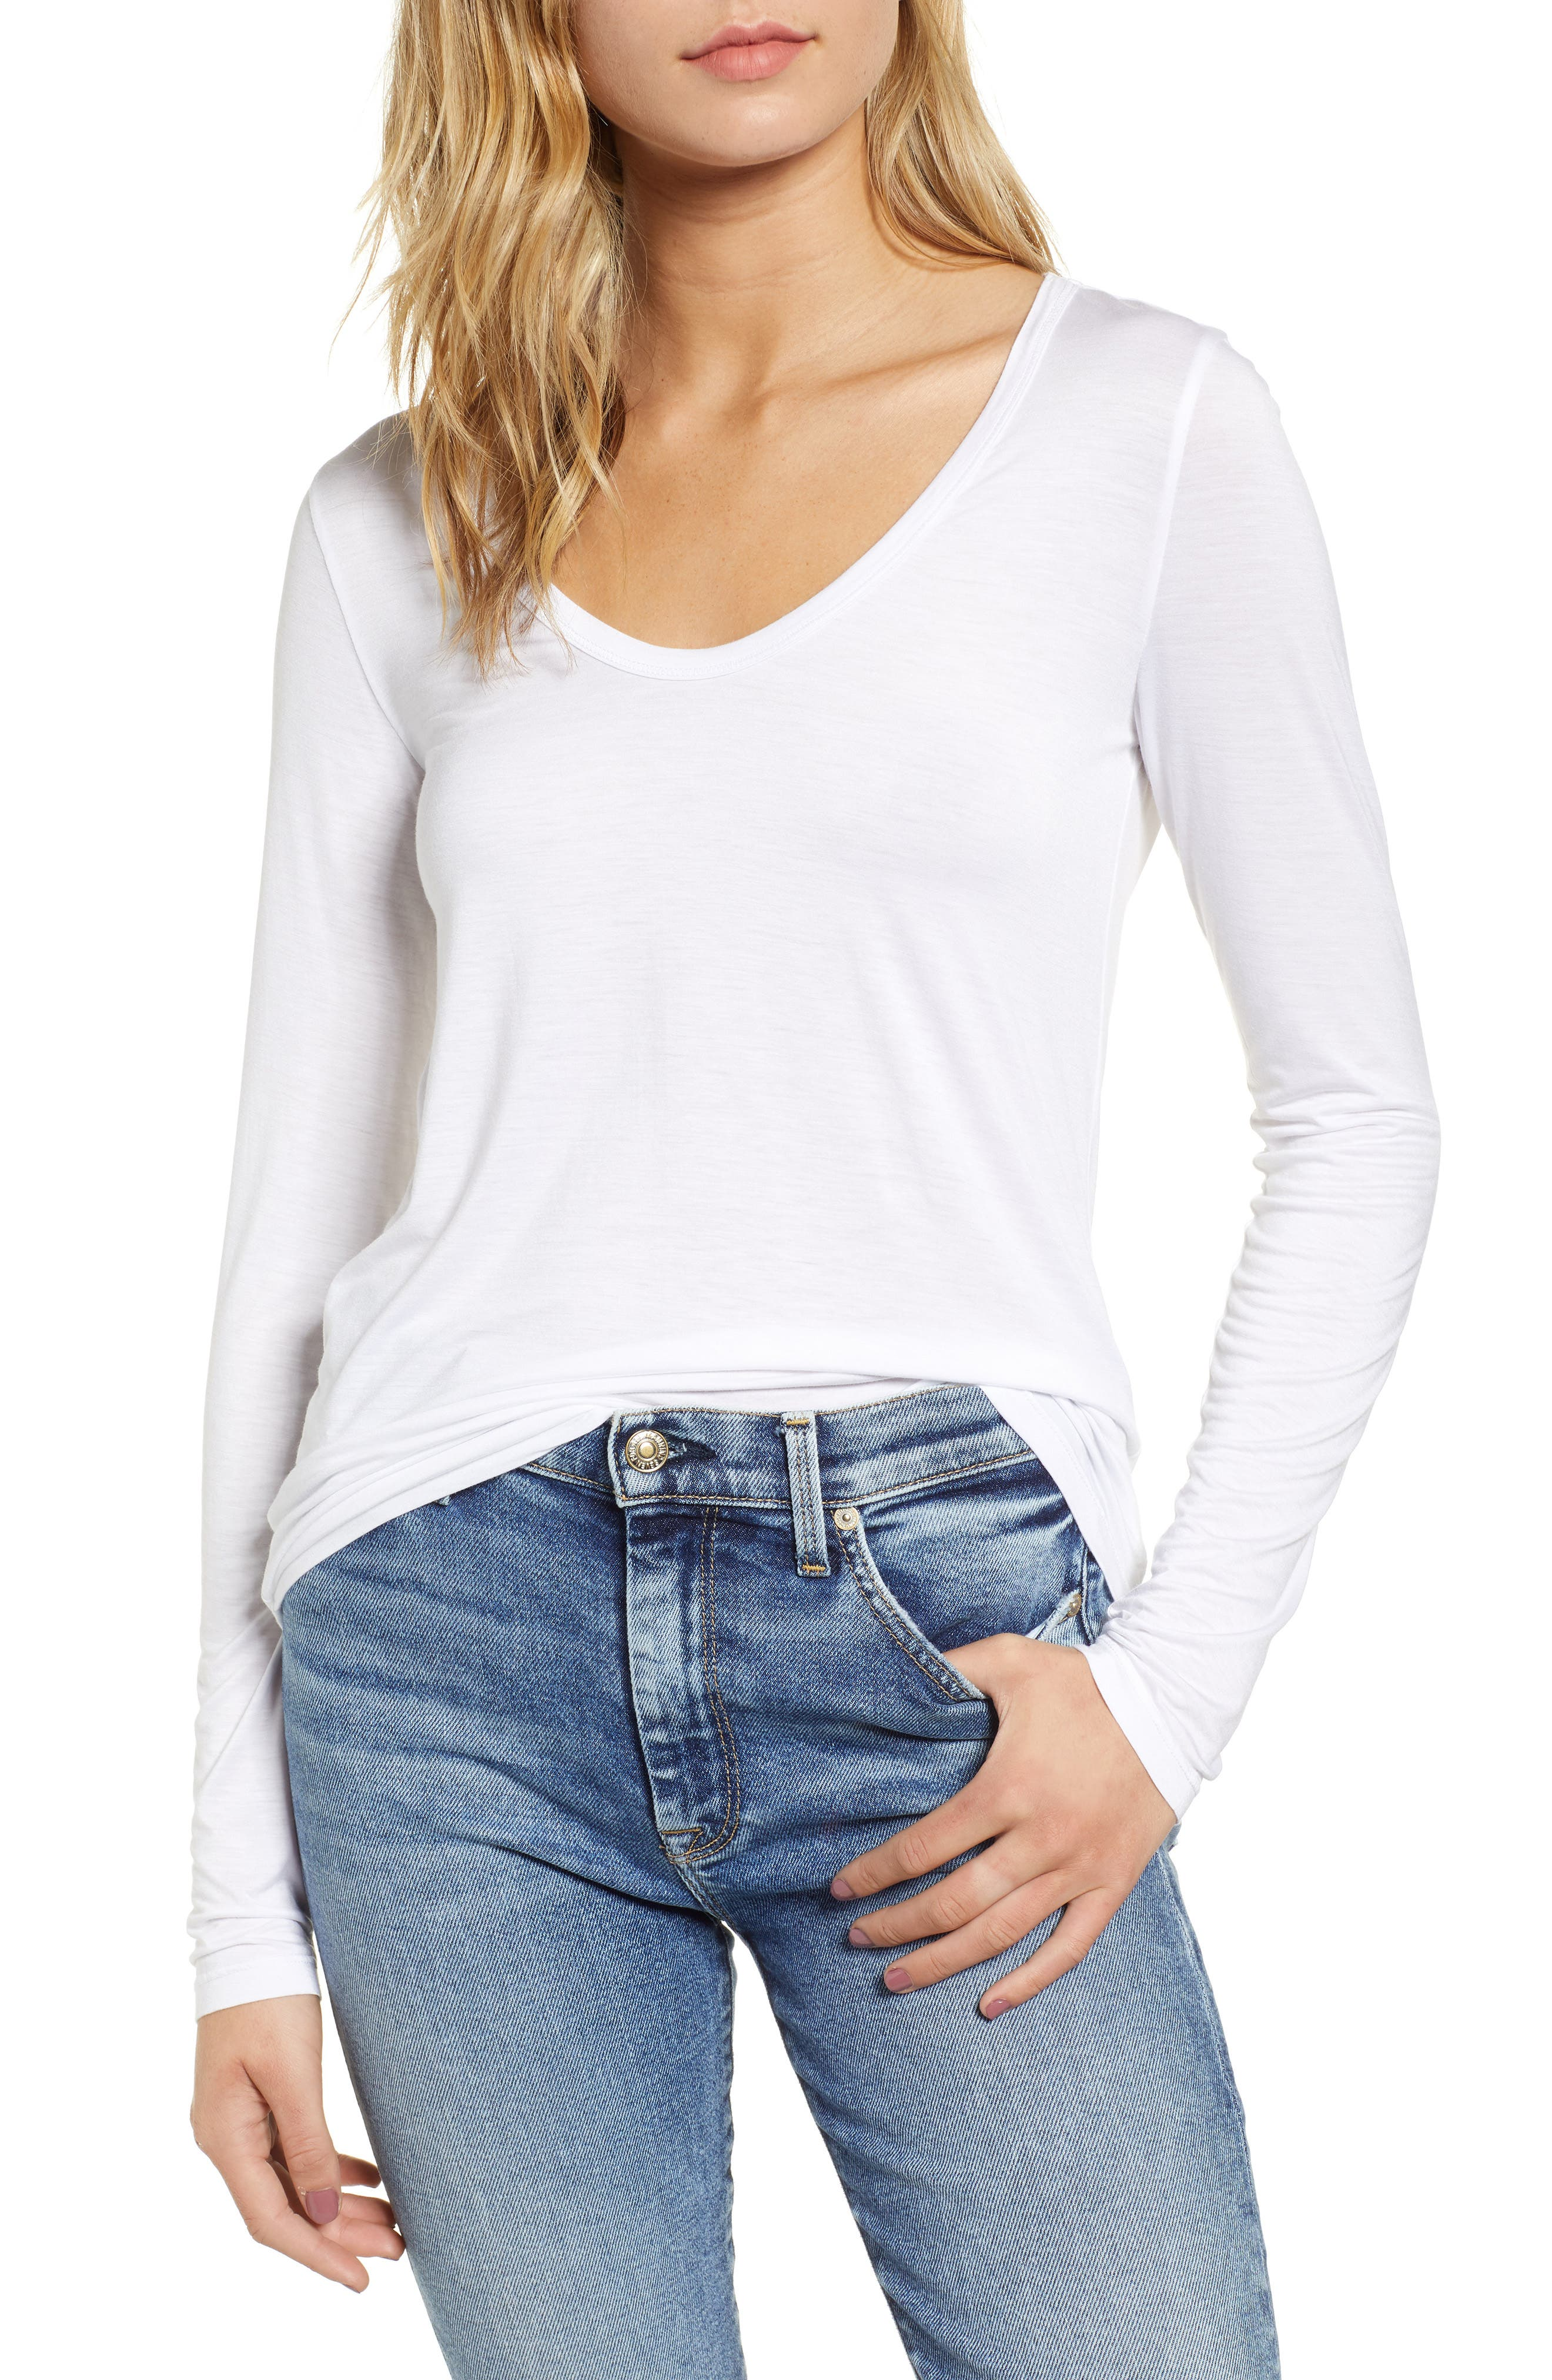 SPLENDID, Scoop Neck Jersey Tee, Main thumbnail 1, color, WHITE